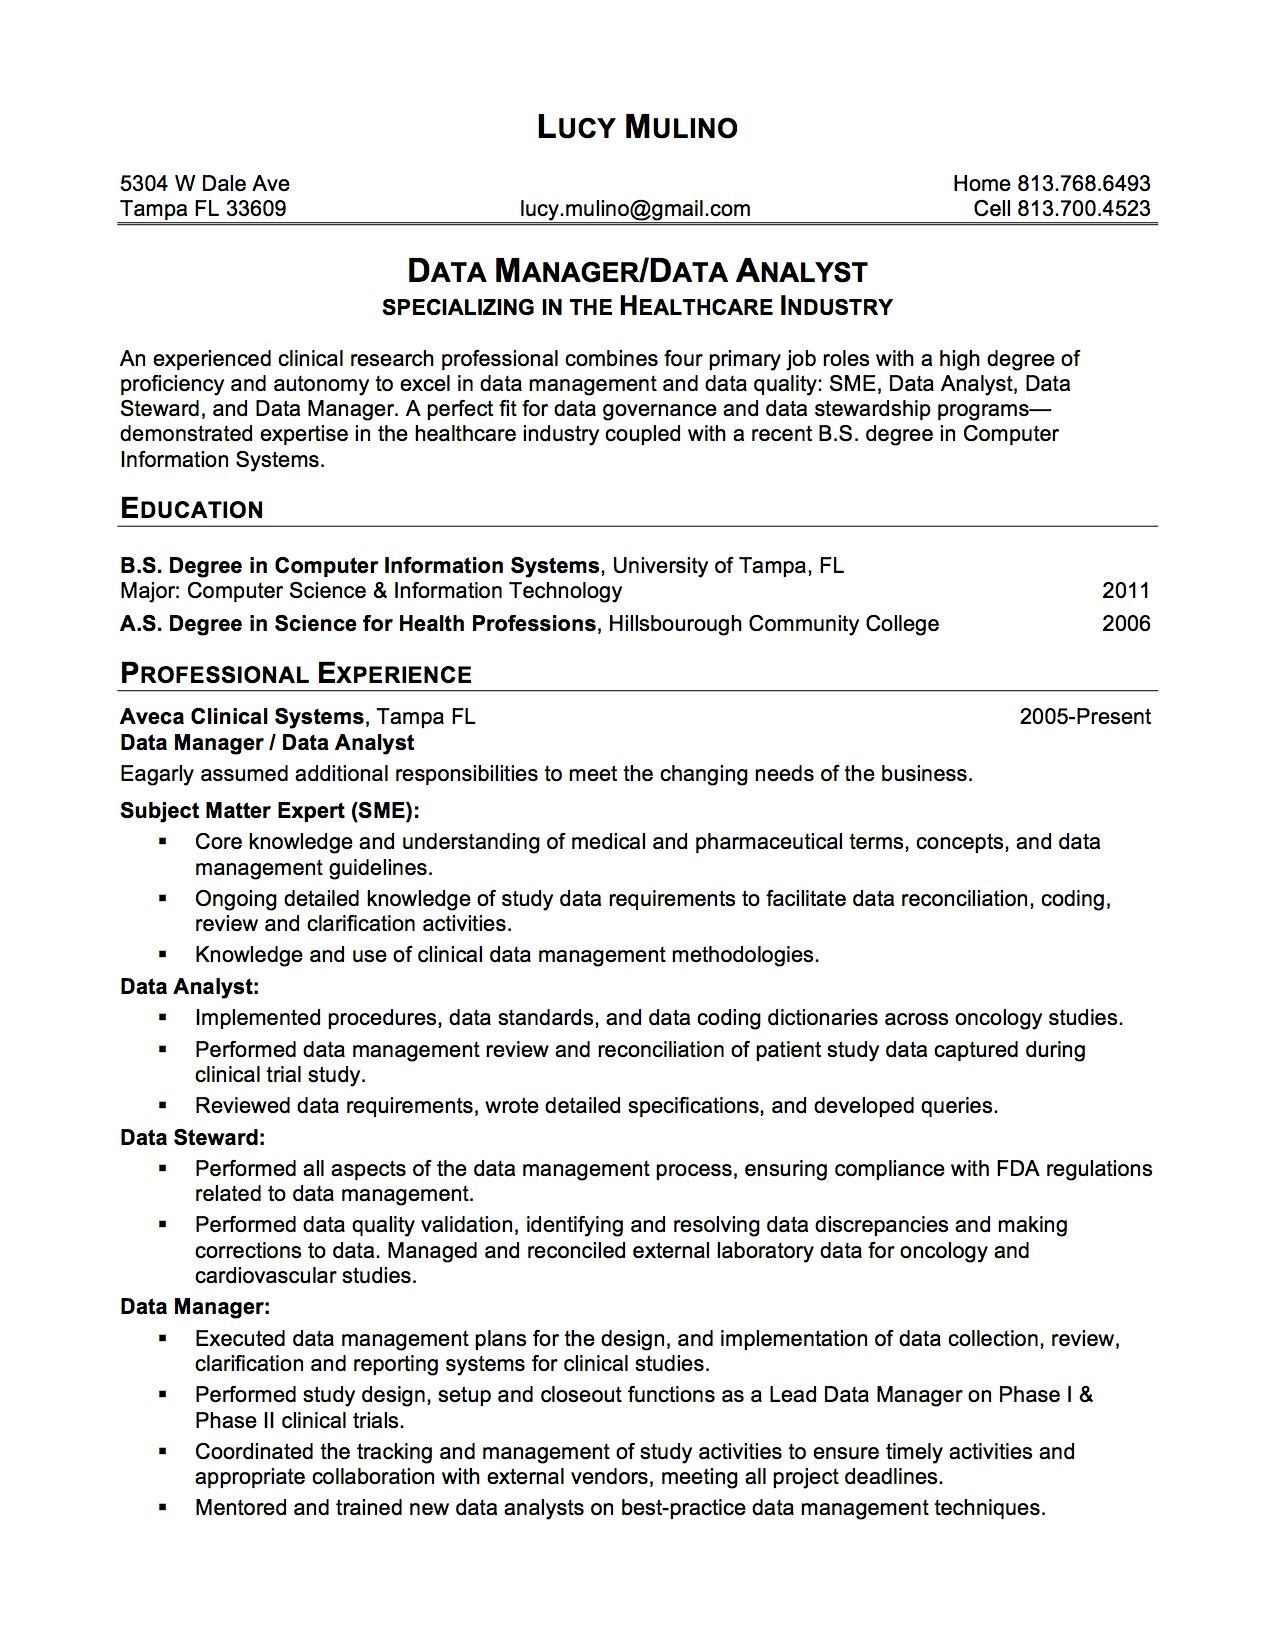 This Is A Good Sample Resume Nice Format Balance Of White Space And Print Plus The Person S Best Qualifications Are In The Data Analyst Data Quality Resume